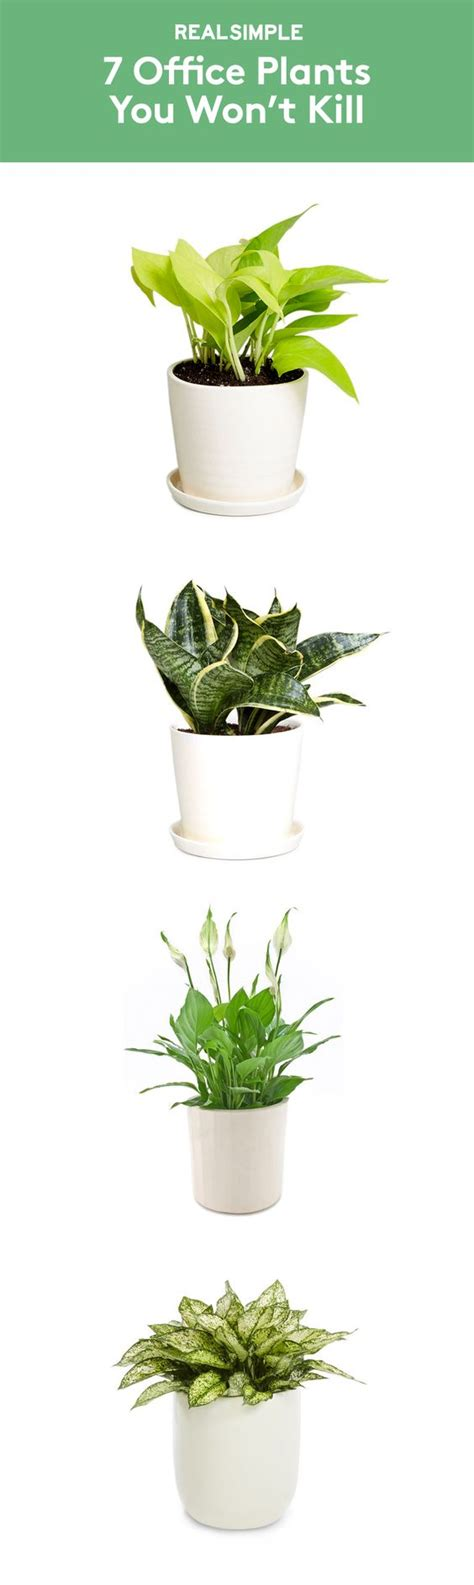 best office plants 7 office plants you won t kill kantoren planten en